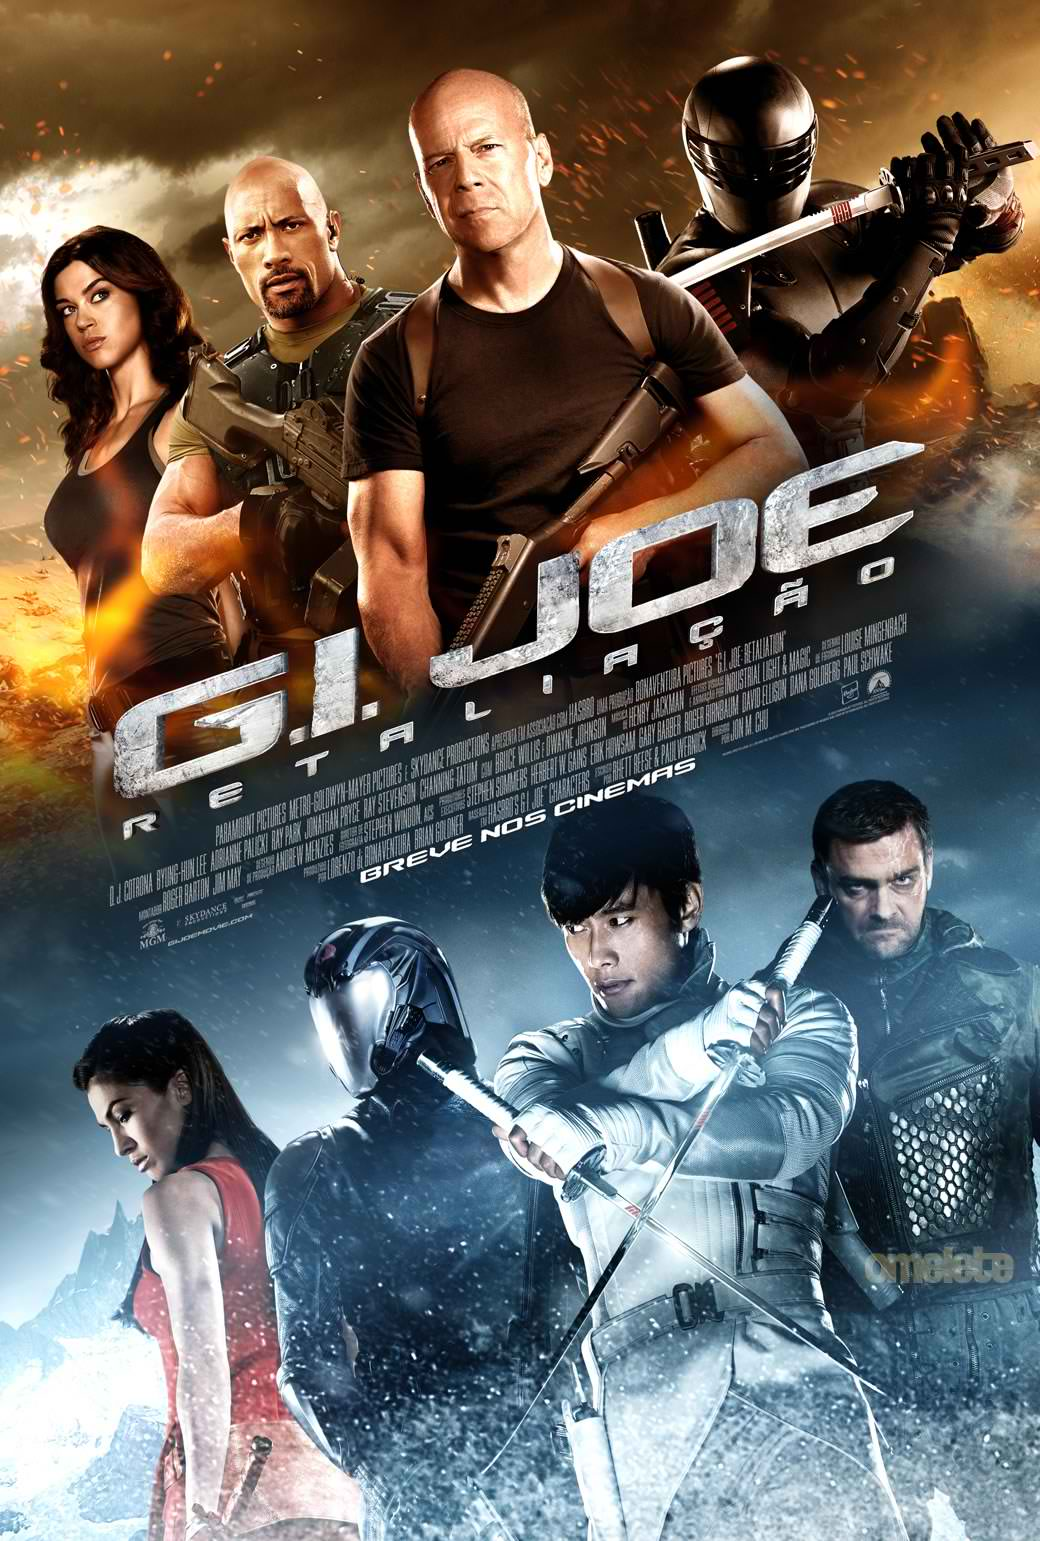 G.I. Joe: Retaliation' Breakdown Analysis: What Worked & Didn't ...